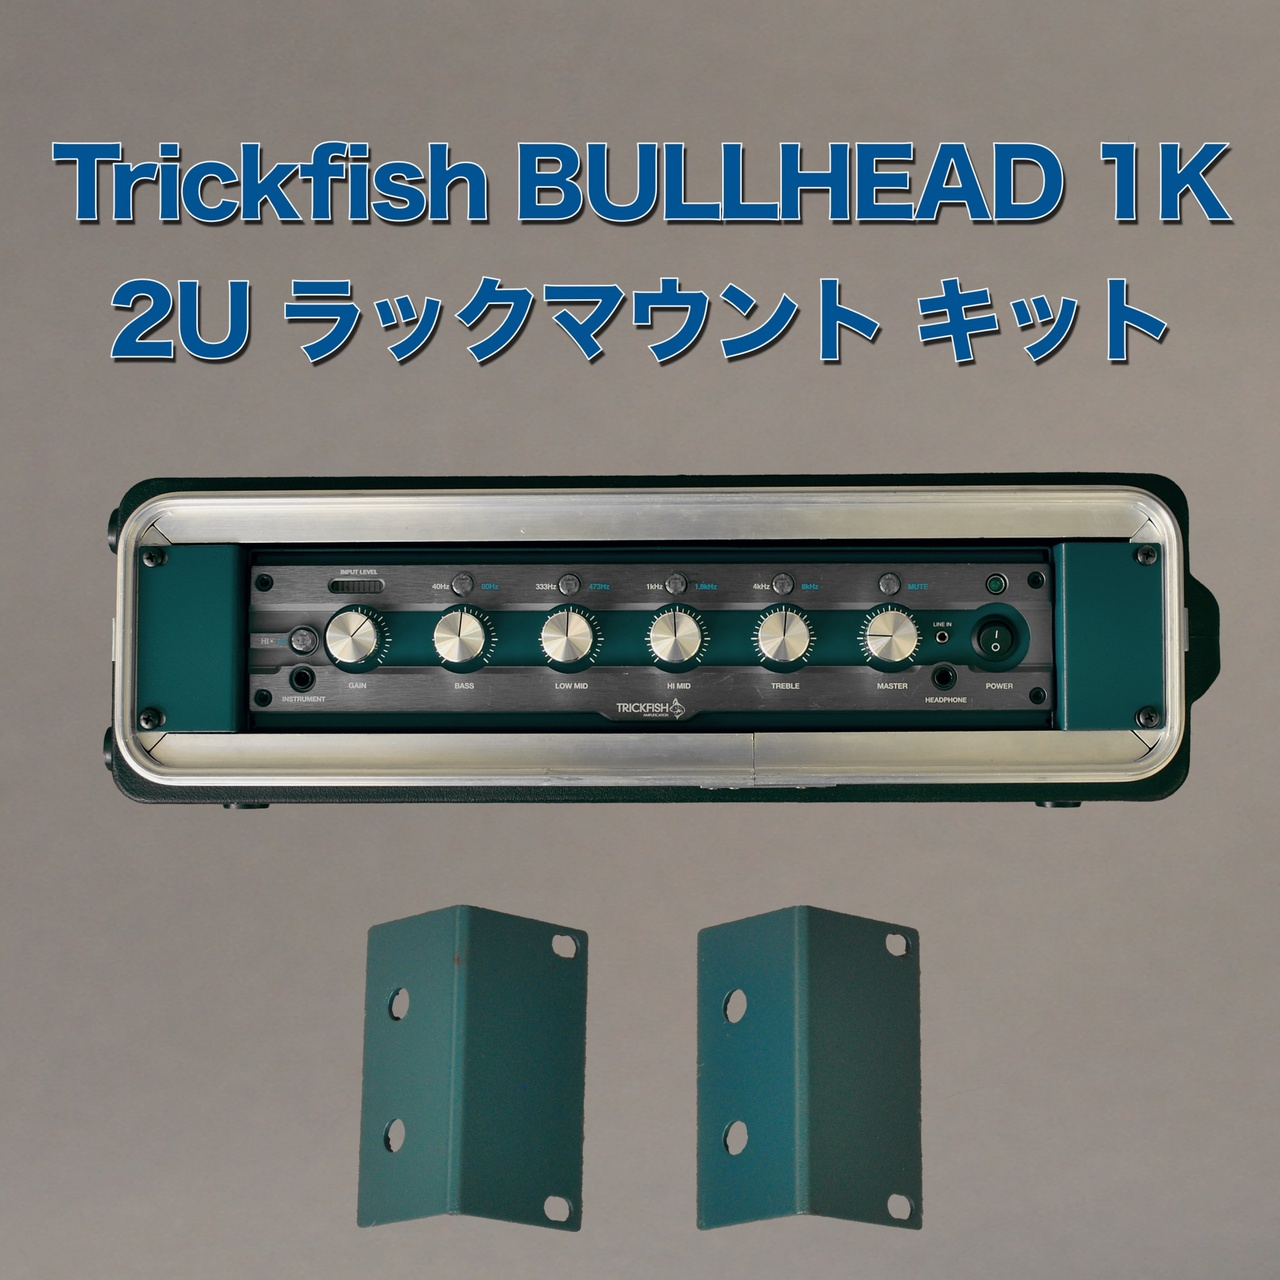 TRICKFISH BULLHEAD 1K rack-mount kit